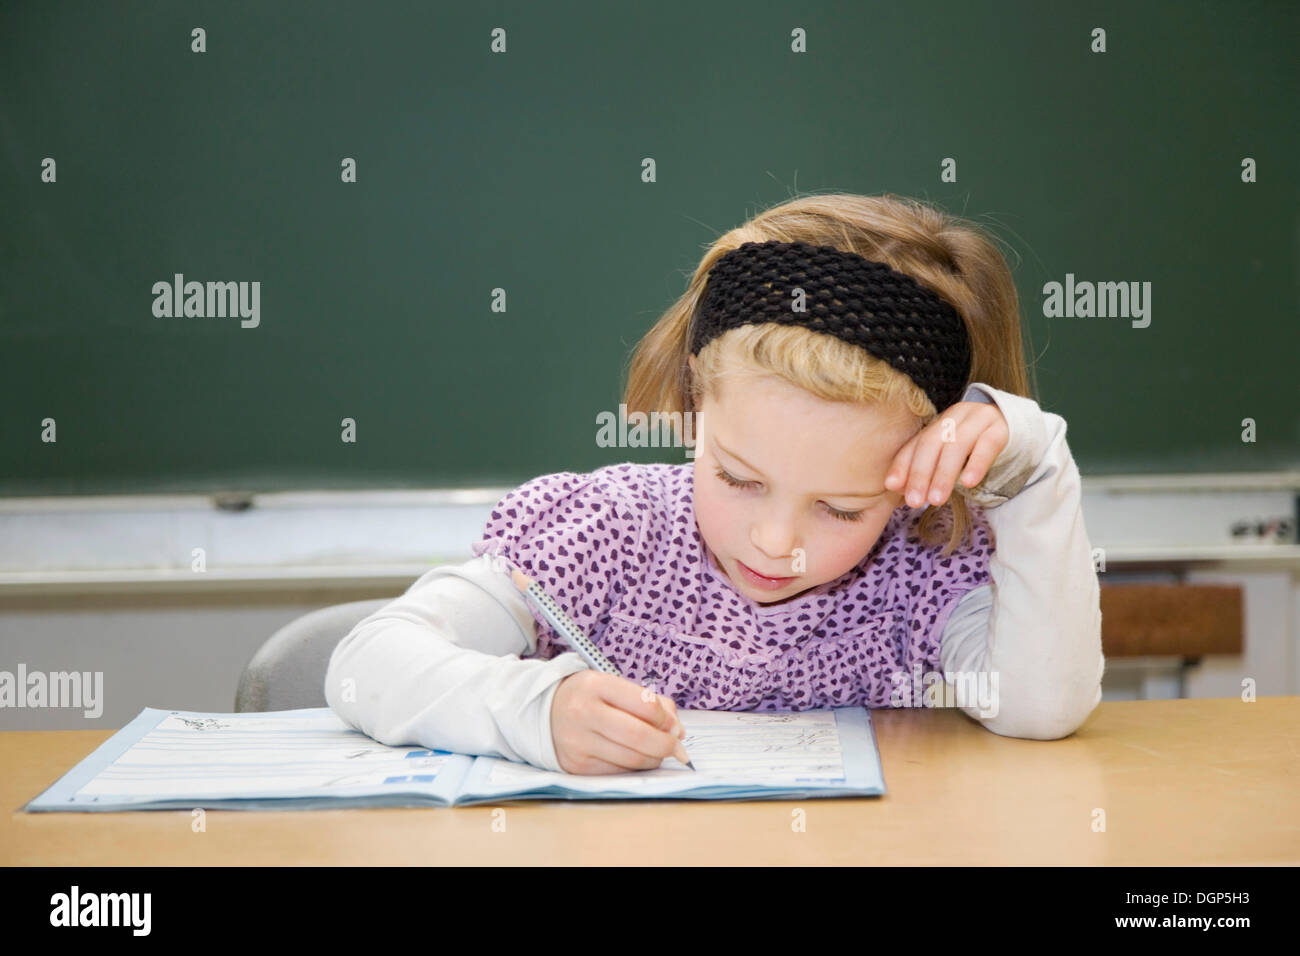 Girls focused on writing during class - Stock Image